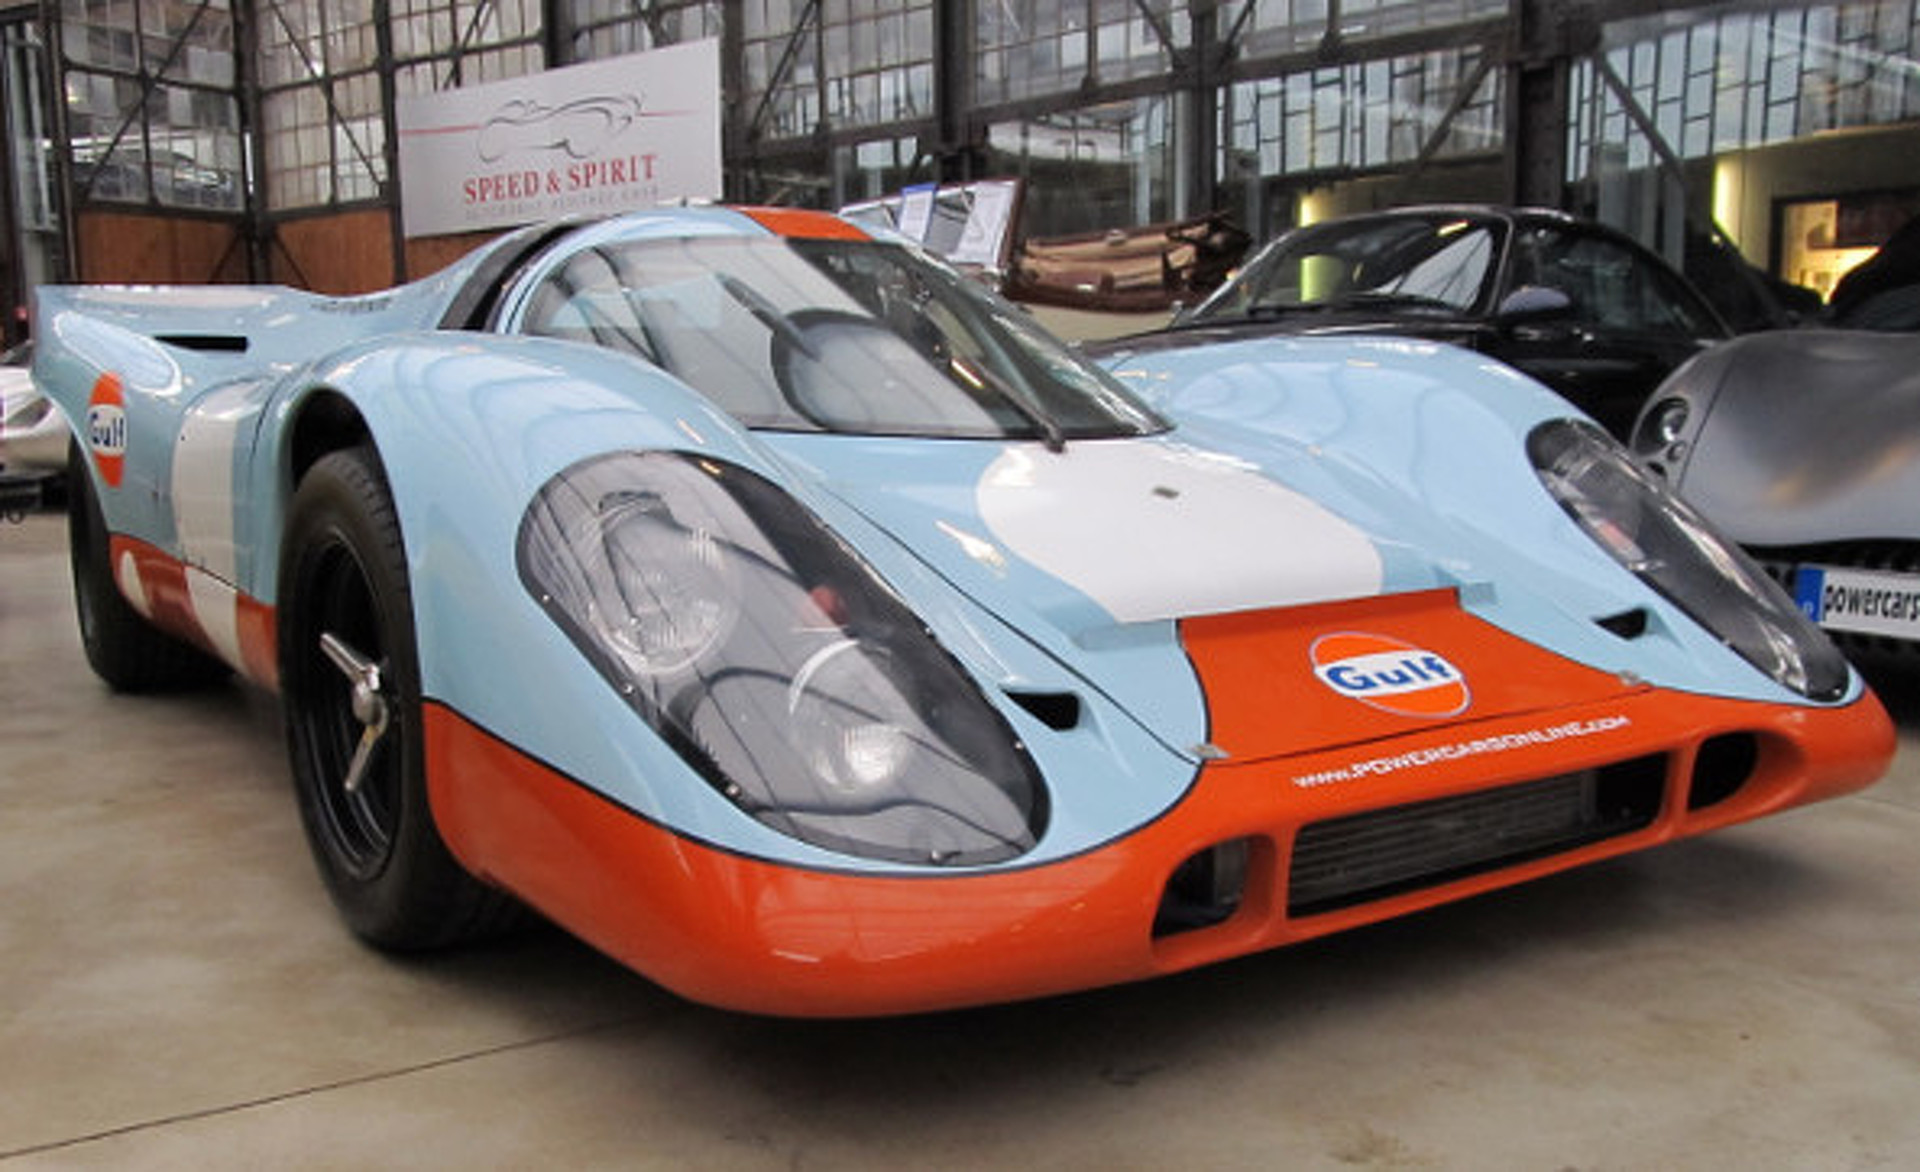 Crashing Someone Else's Porsche 917 is an Auto Journalists Worst Nightmare